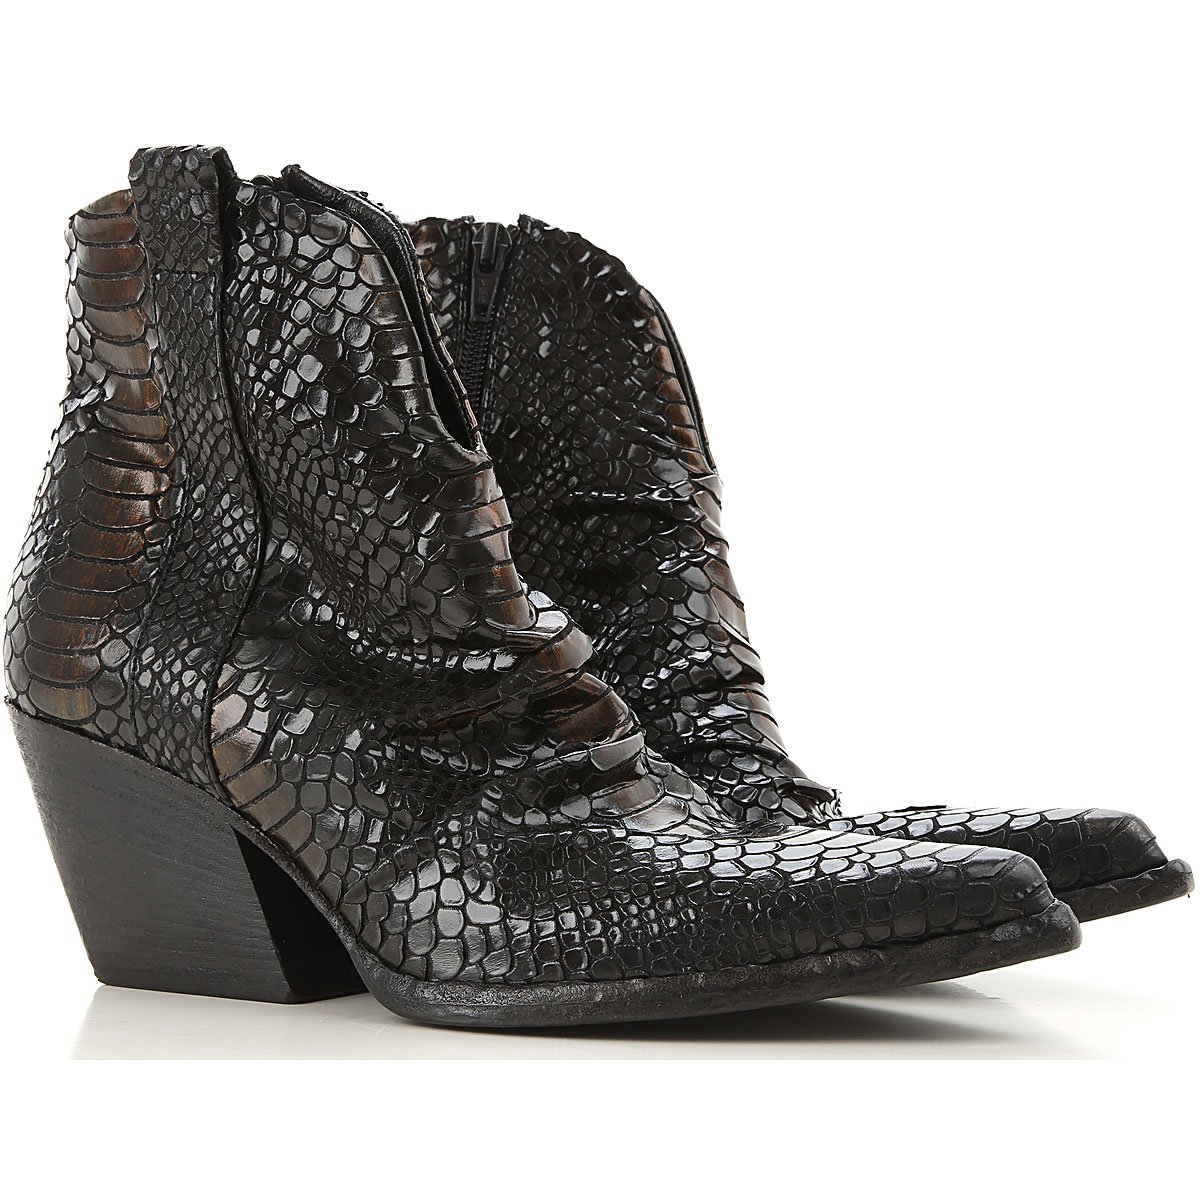 Elena Iachi Boots for Women, Booties On Sale, Black, Leather, 2019, 10 11 7 8 9